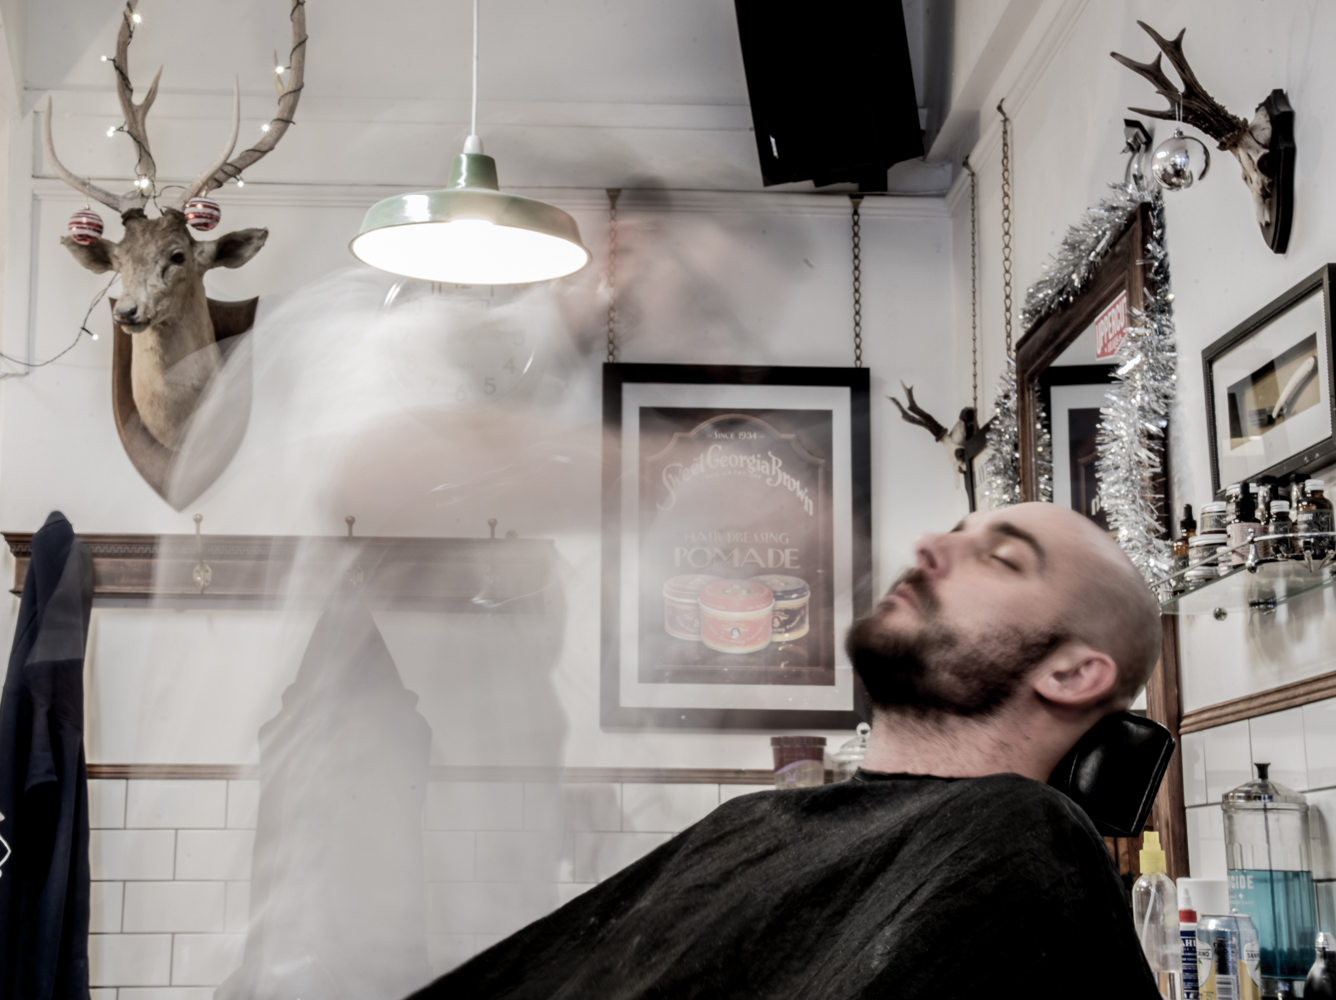 Bexhill Barbershop ghost barber